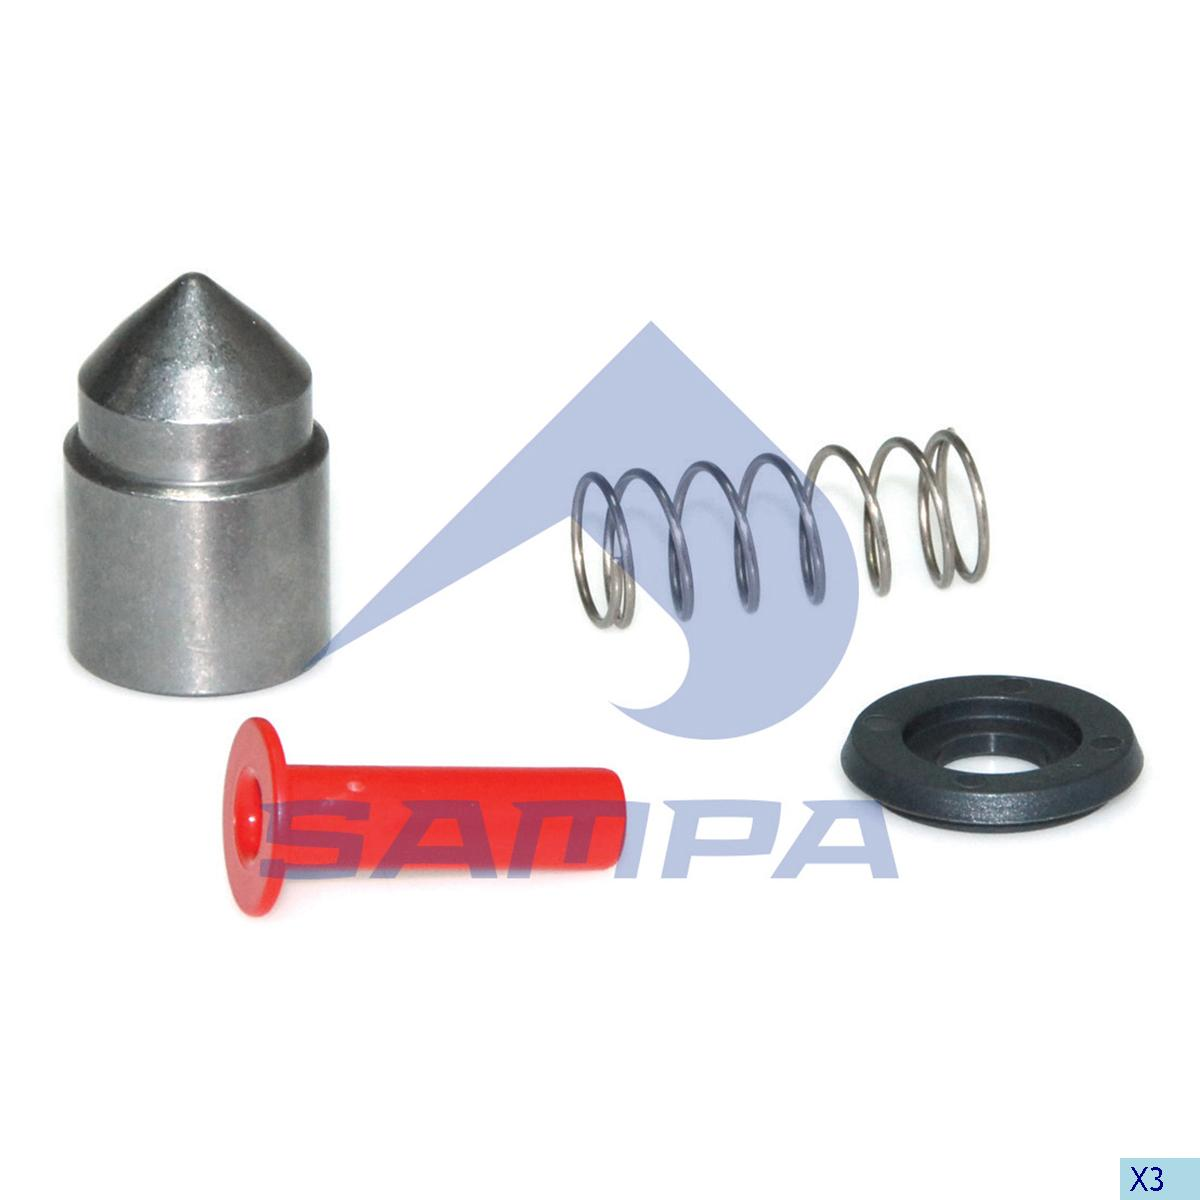 Repair Kit, Trailer Coupling, Ringfeder, Complementary Equipment